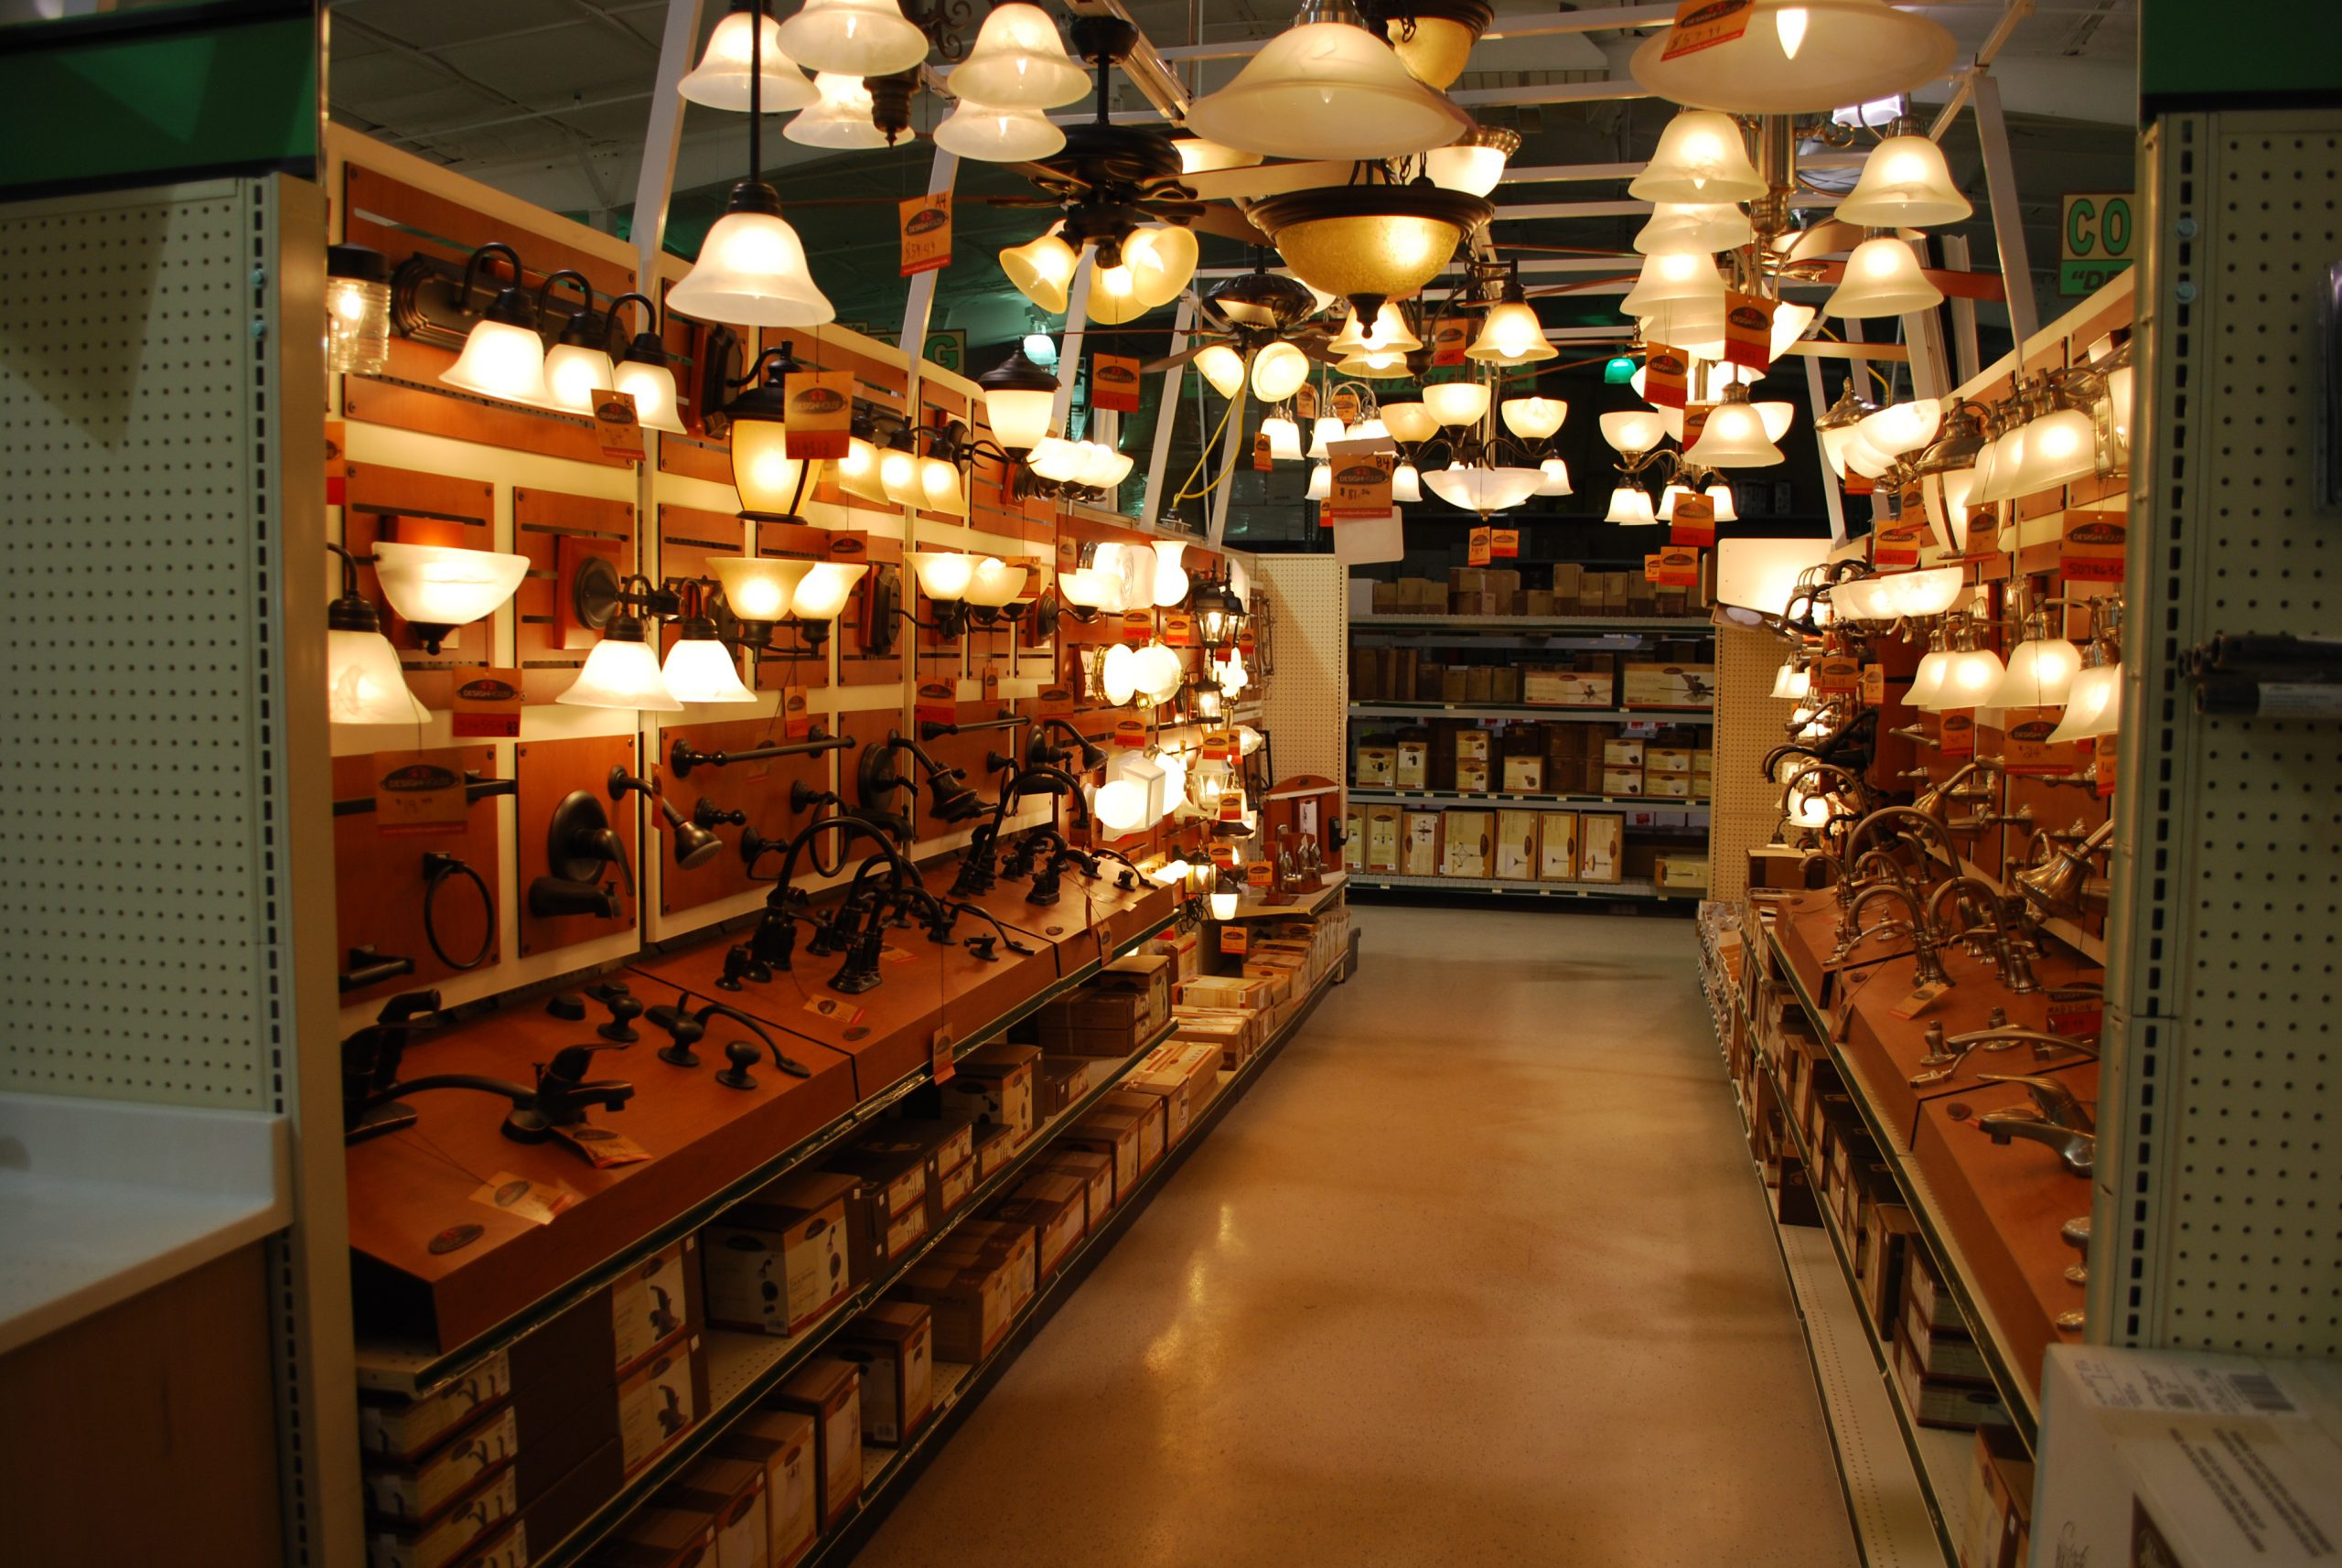 Hardware store aisle with light fixtures and product promotion